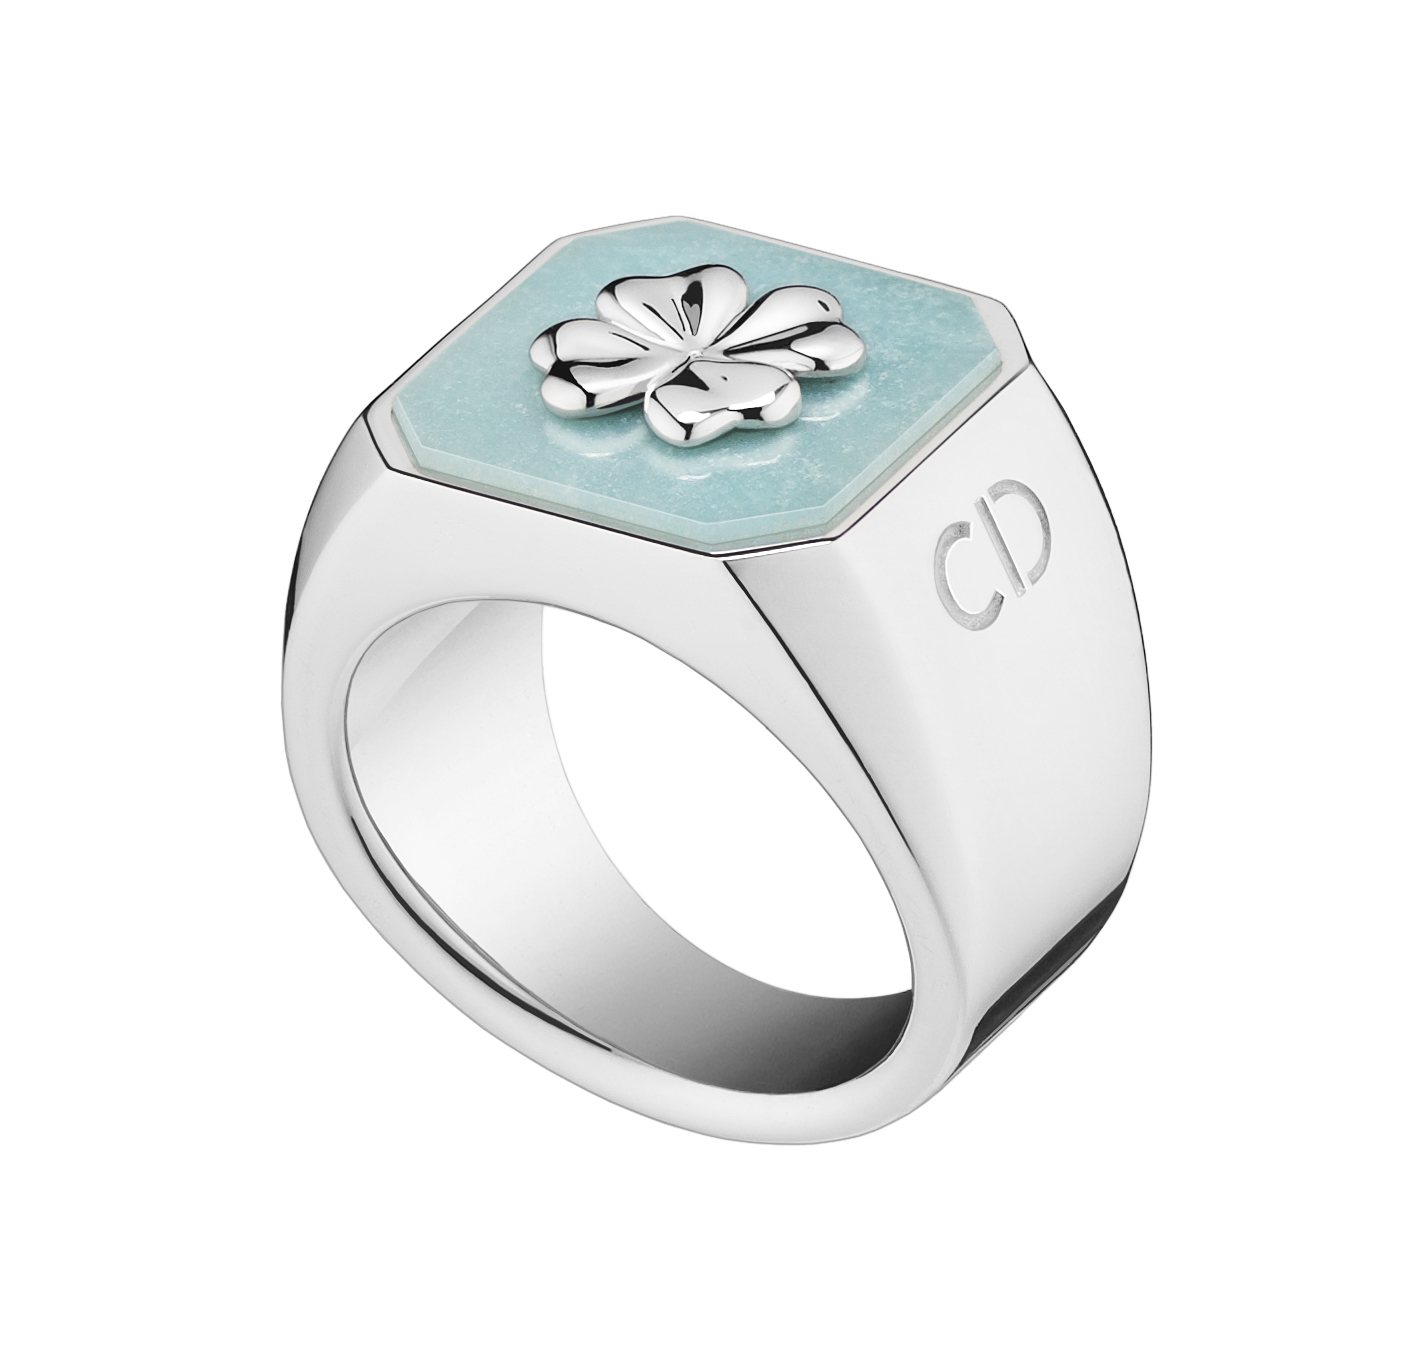 Lucky-Dior-Clover-pattern-ring-in-metal-with-rhodium-finish-and-amazonite